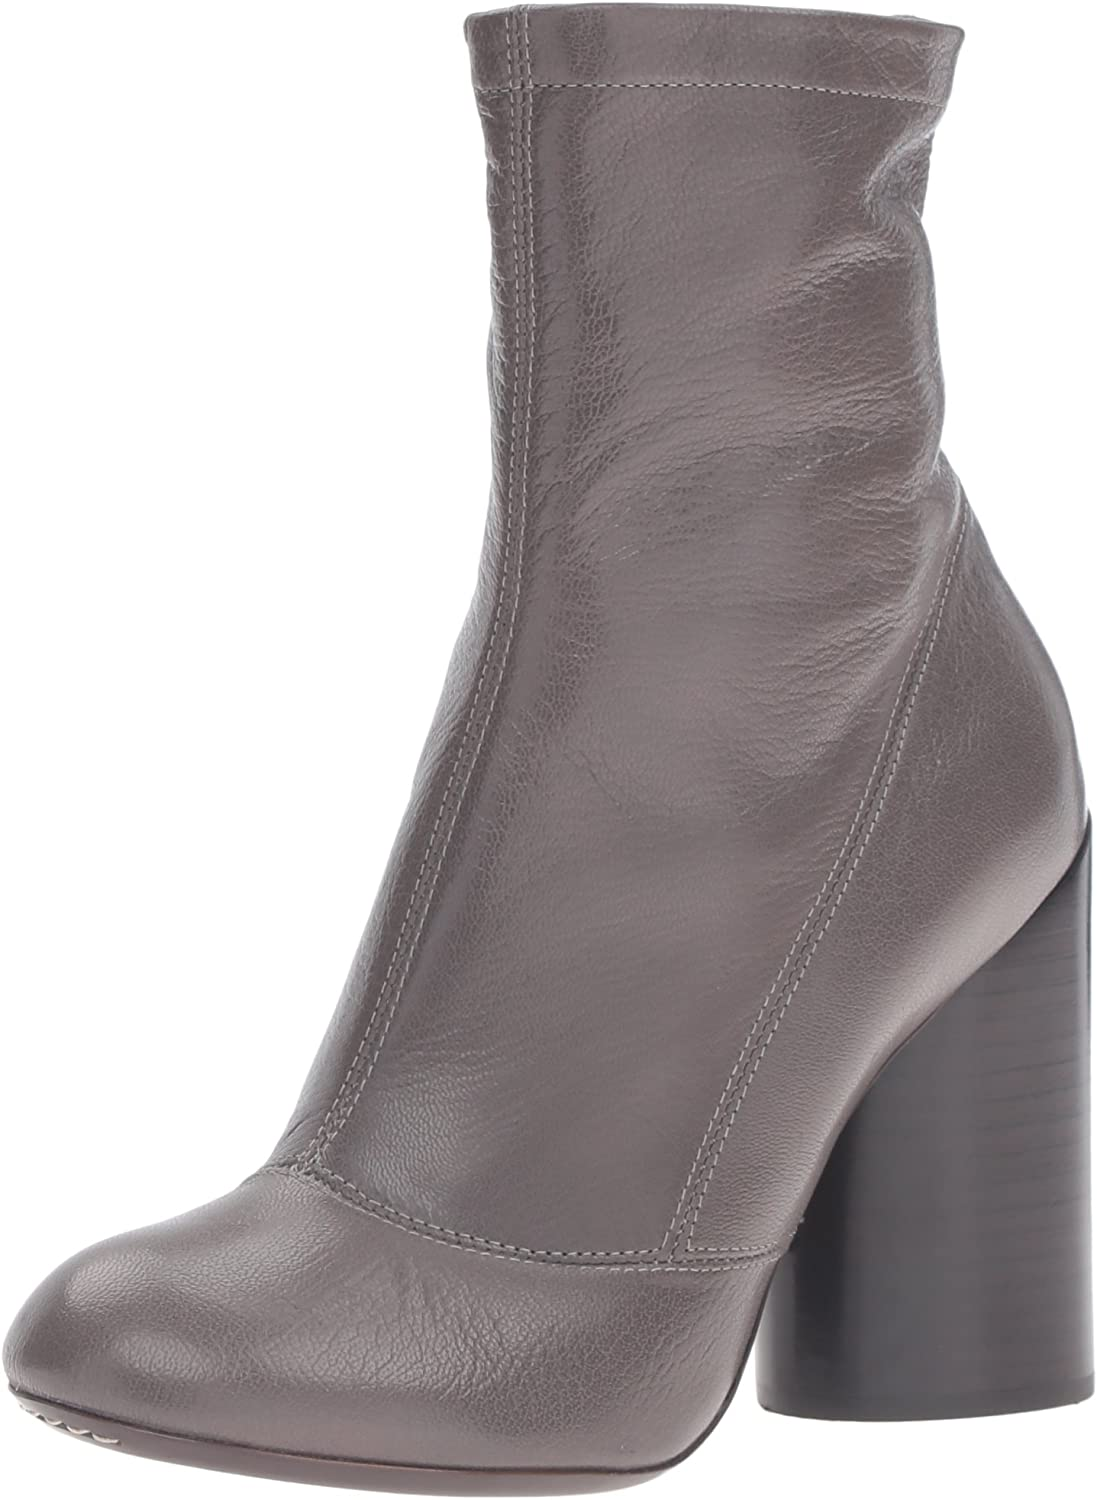 Marc Jacobs Women's Grace Ankle Boot